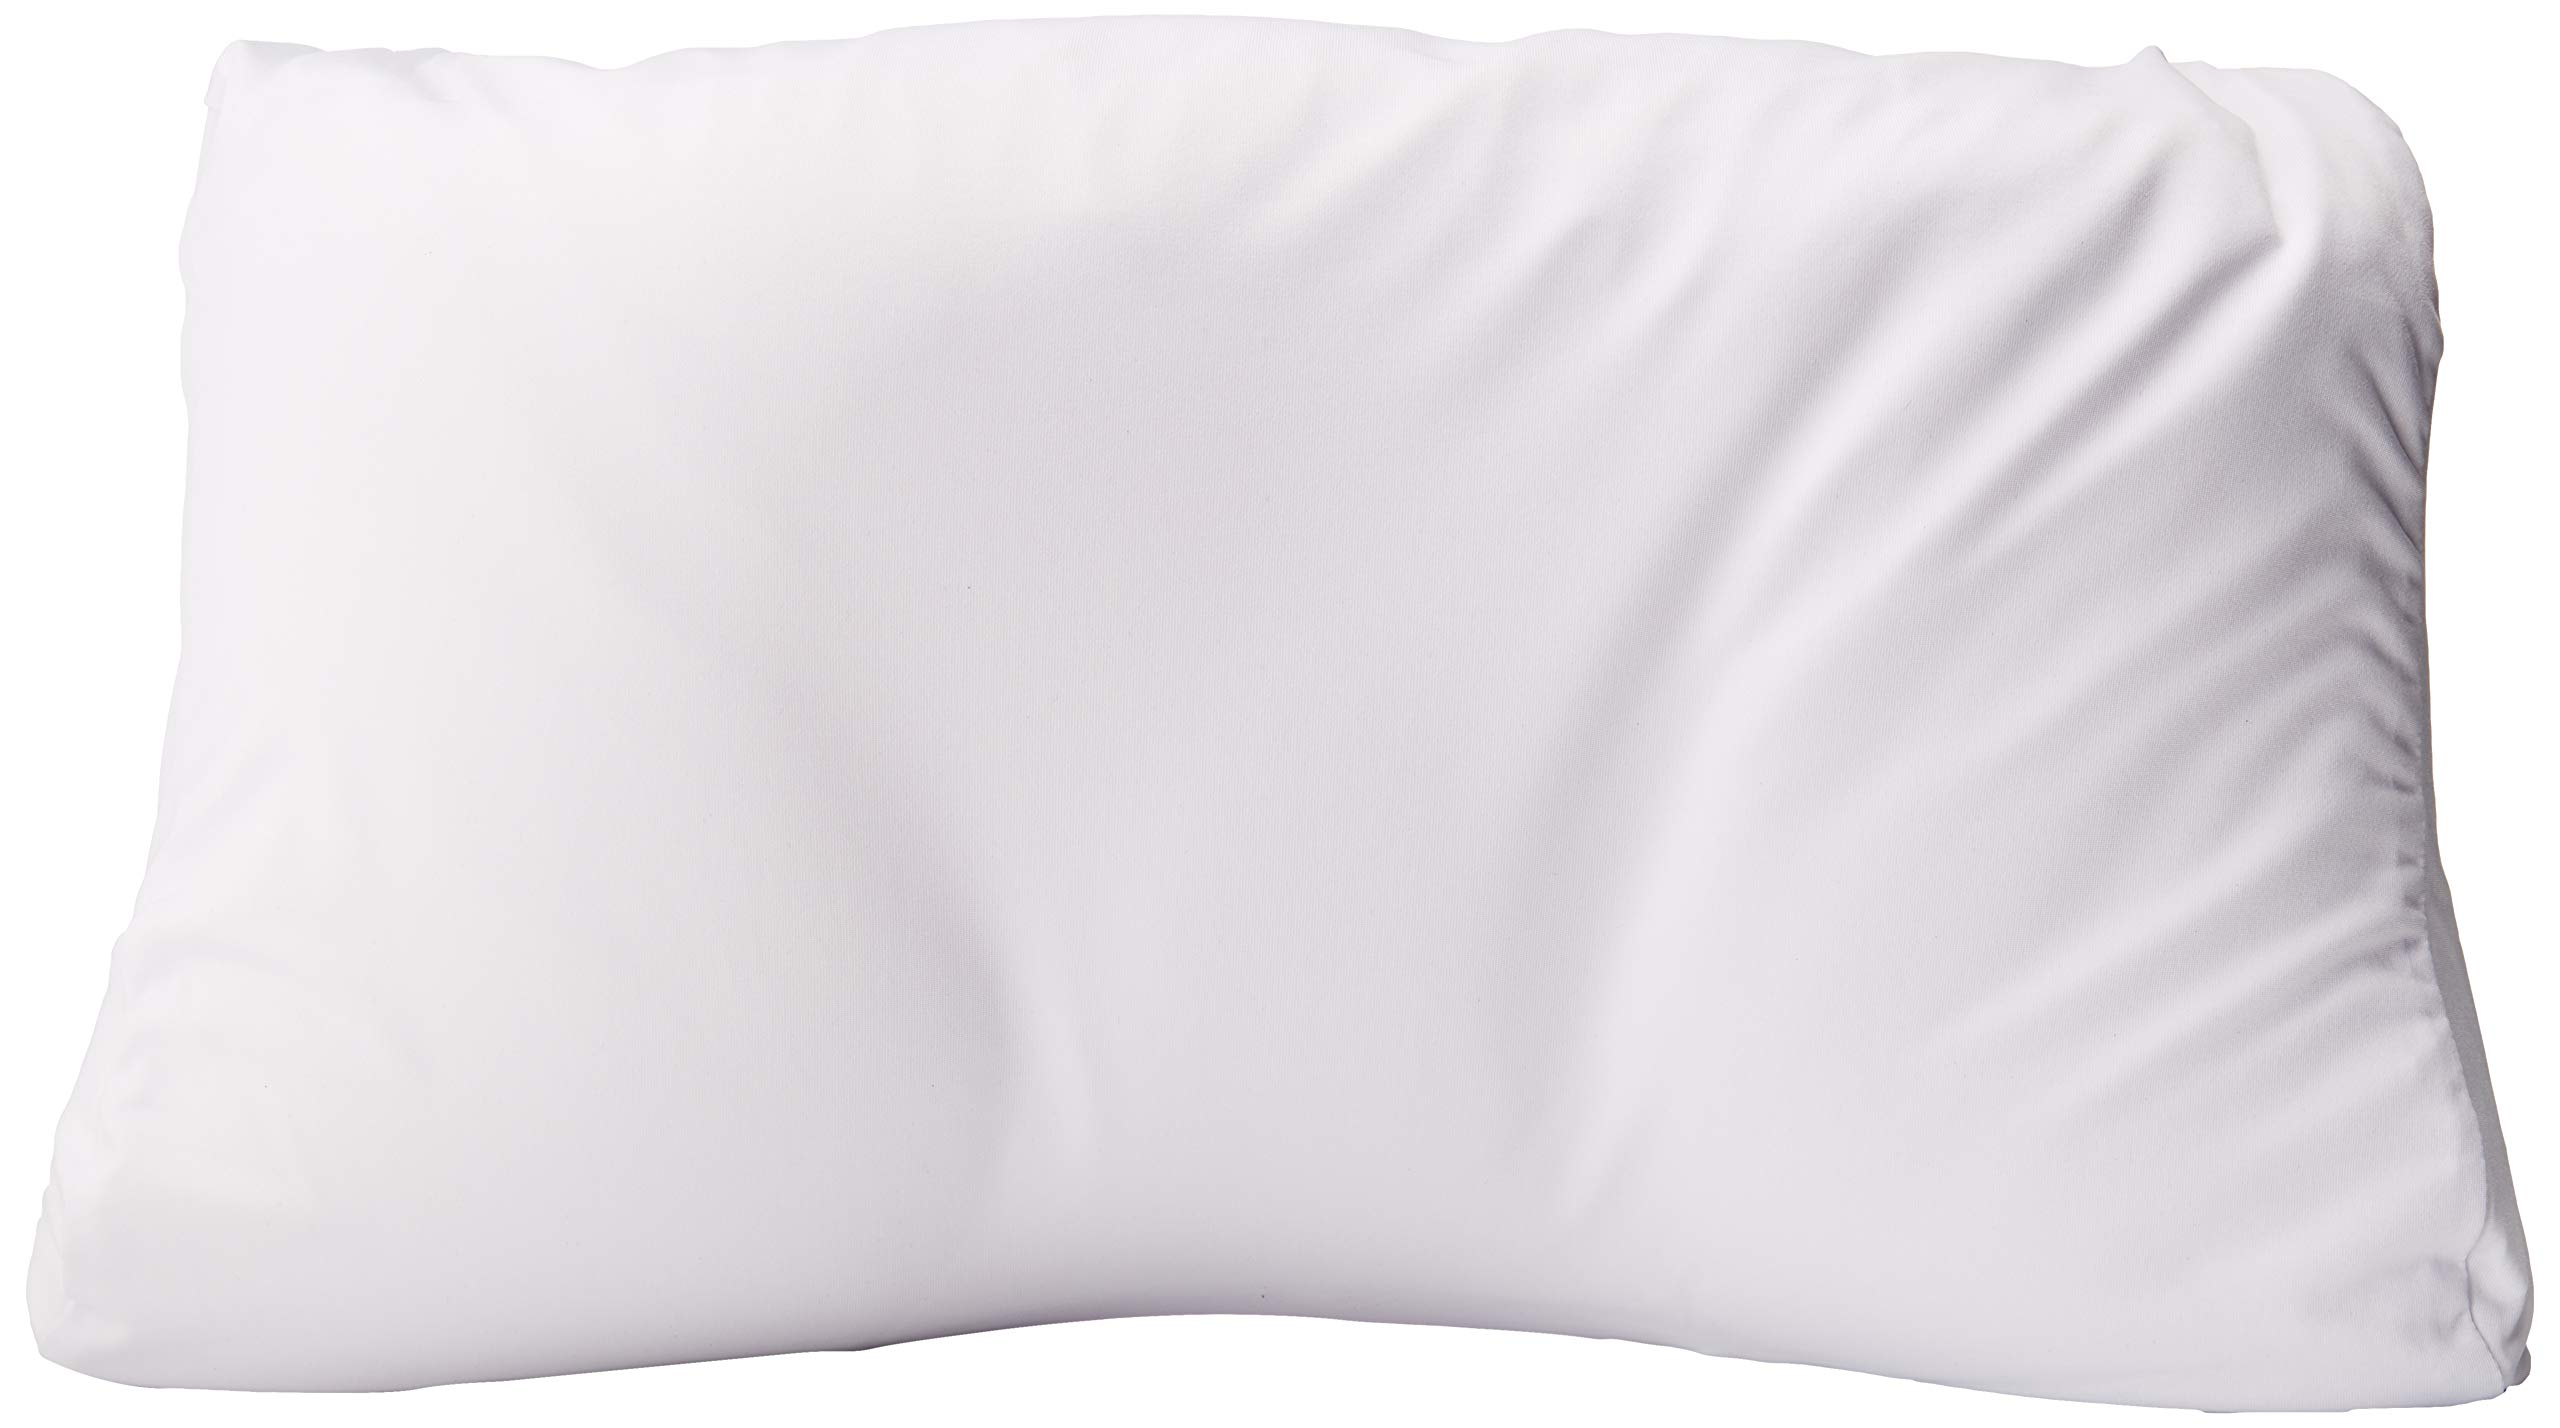 Sobakawa Cloud Pillow 12.6″ x 18.5″ x 3.15″